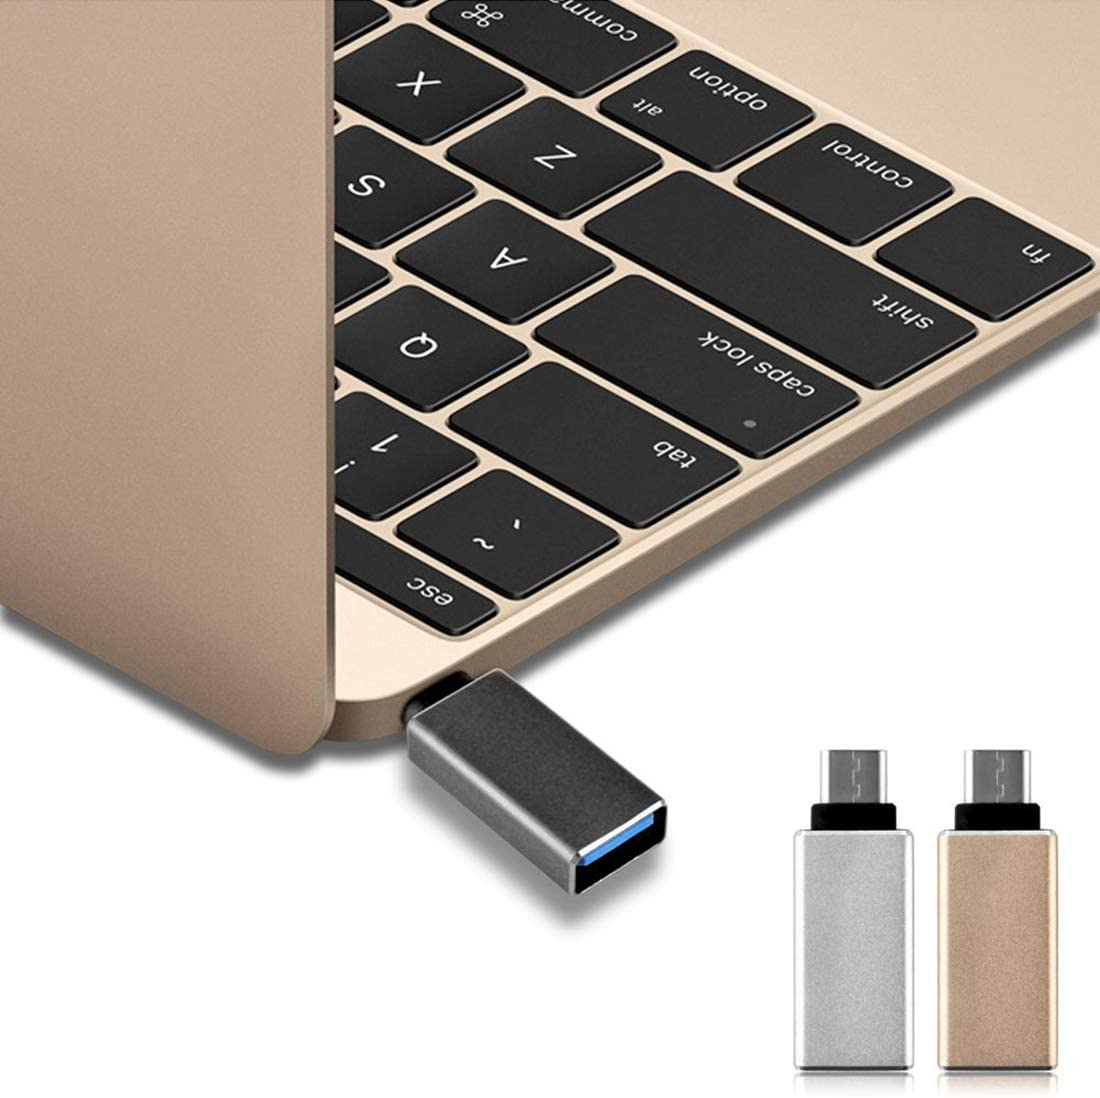 Chromebook Pixel 2015 Black Color : Black for MacBook 12 inch Yangjie Cell Phone USB Cable USB Type C USB 3.0 to USB-C//Type-C 3.1 Converter Adapter